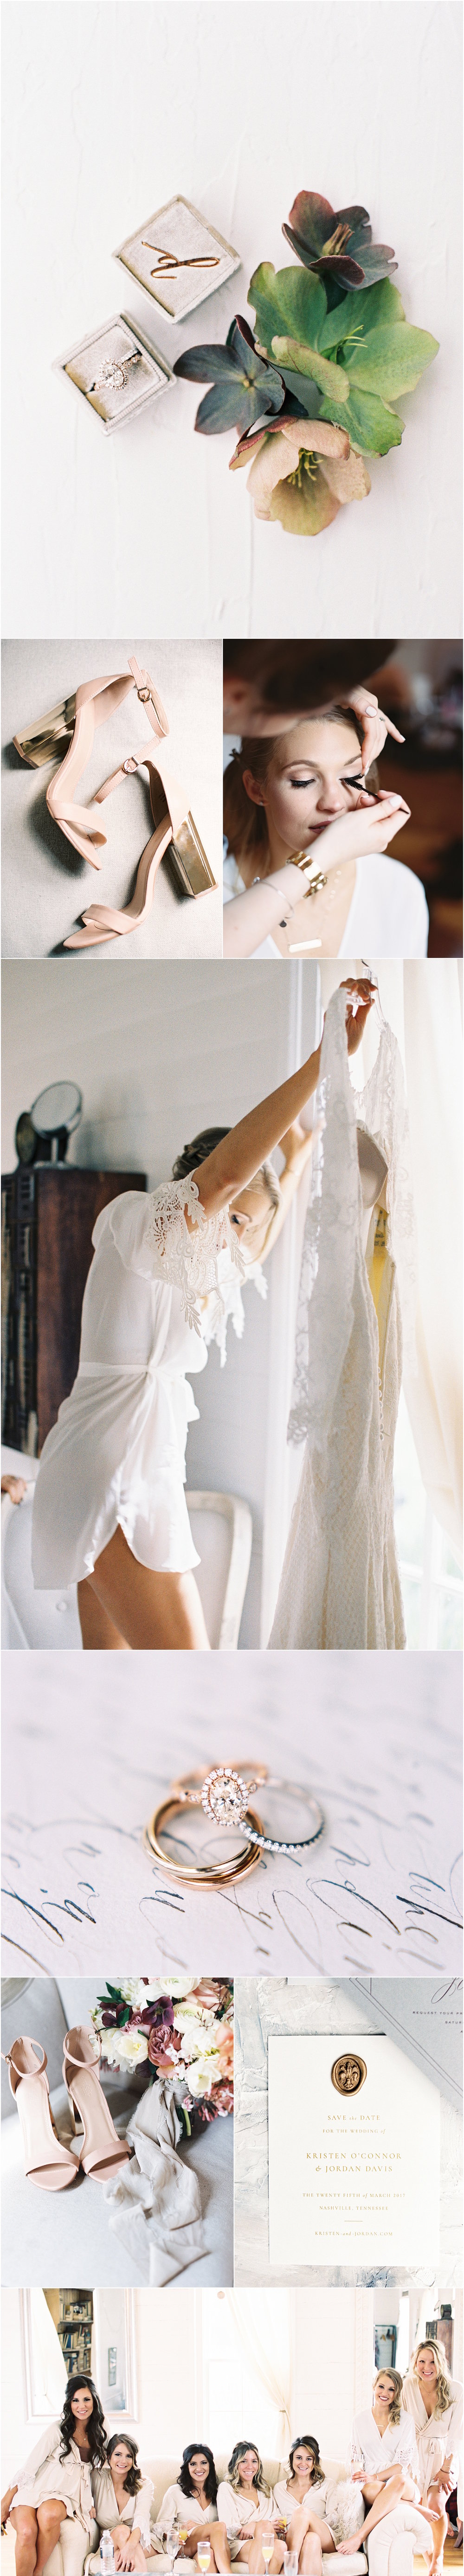 Nashville wedding photographer Sarah Ingram